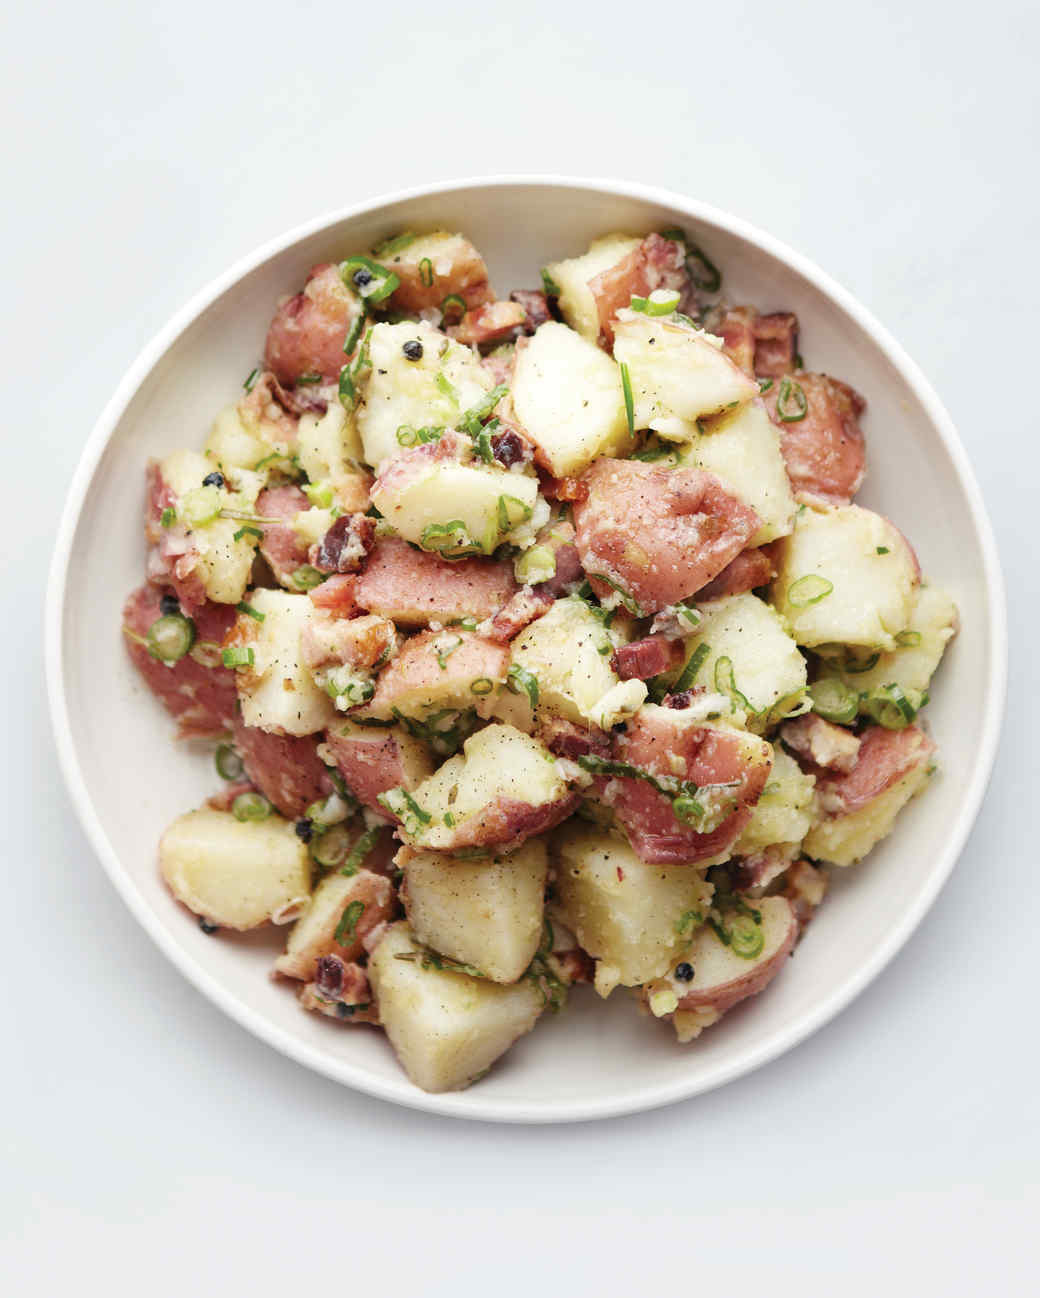 hered-potato-salad-with-bacon-and-scallions-d107478-0615.jpg